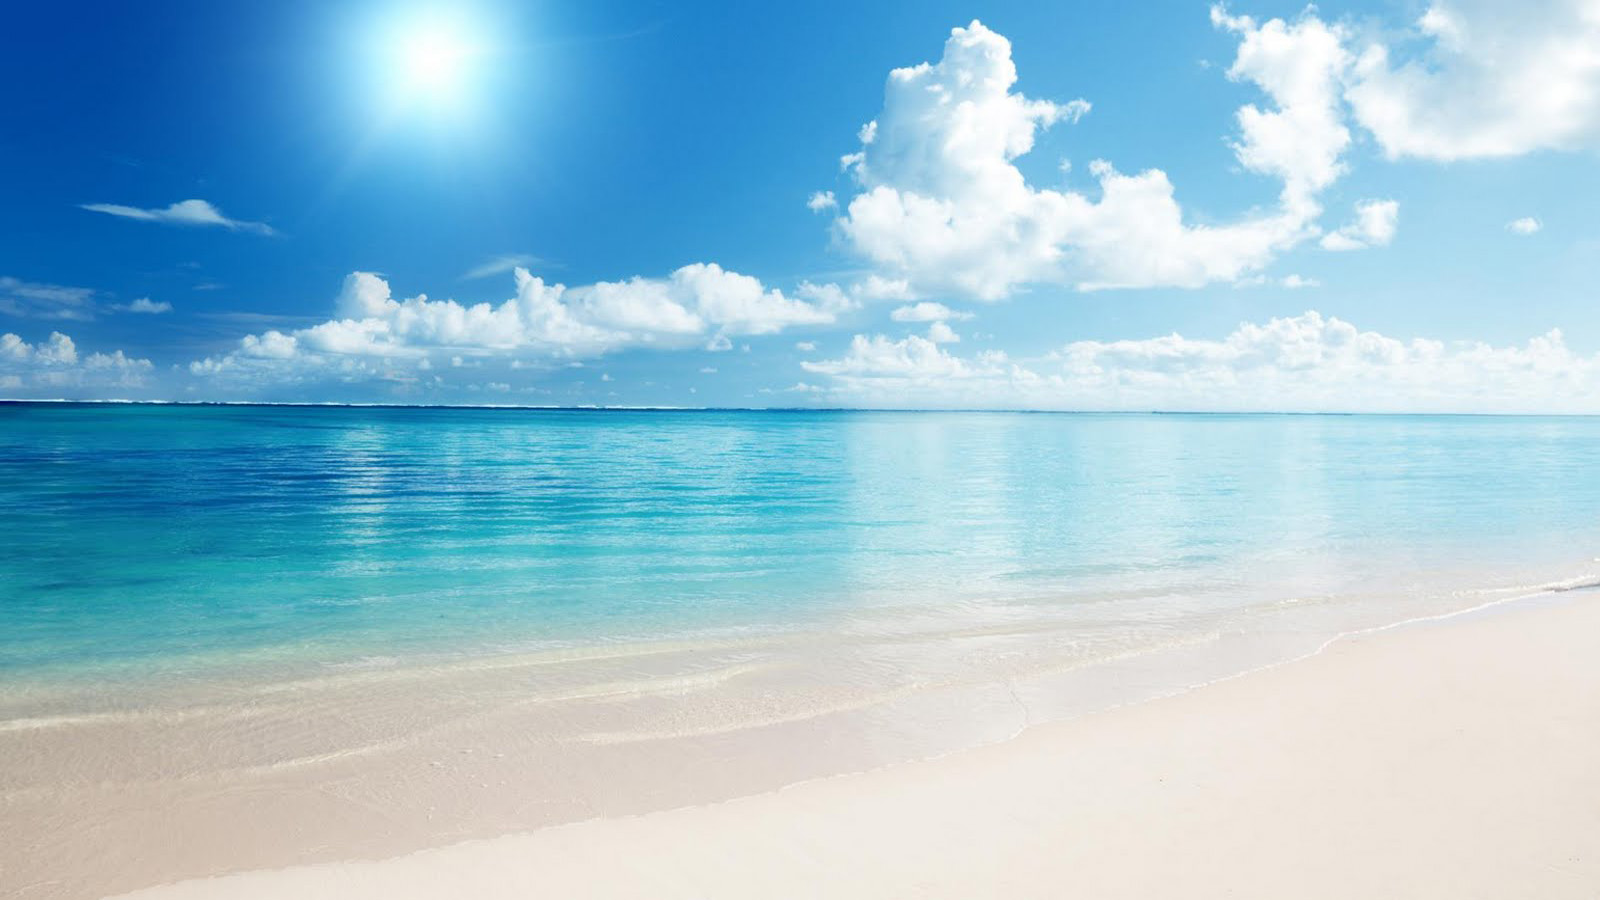 203489 Wallpapers in Category Beach Wallpaper   Page 2 1600x900